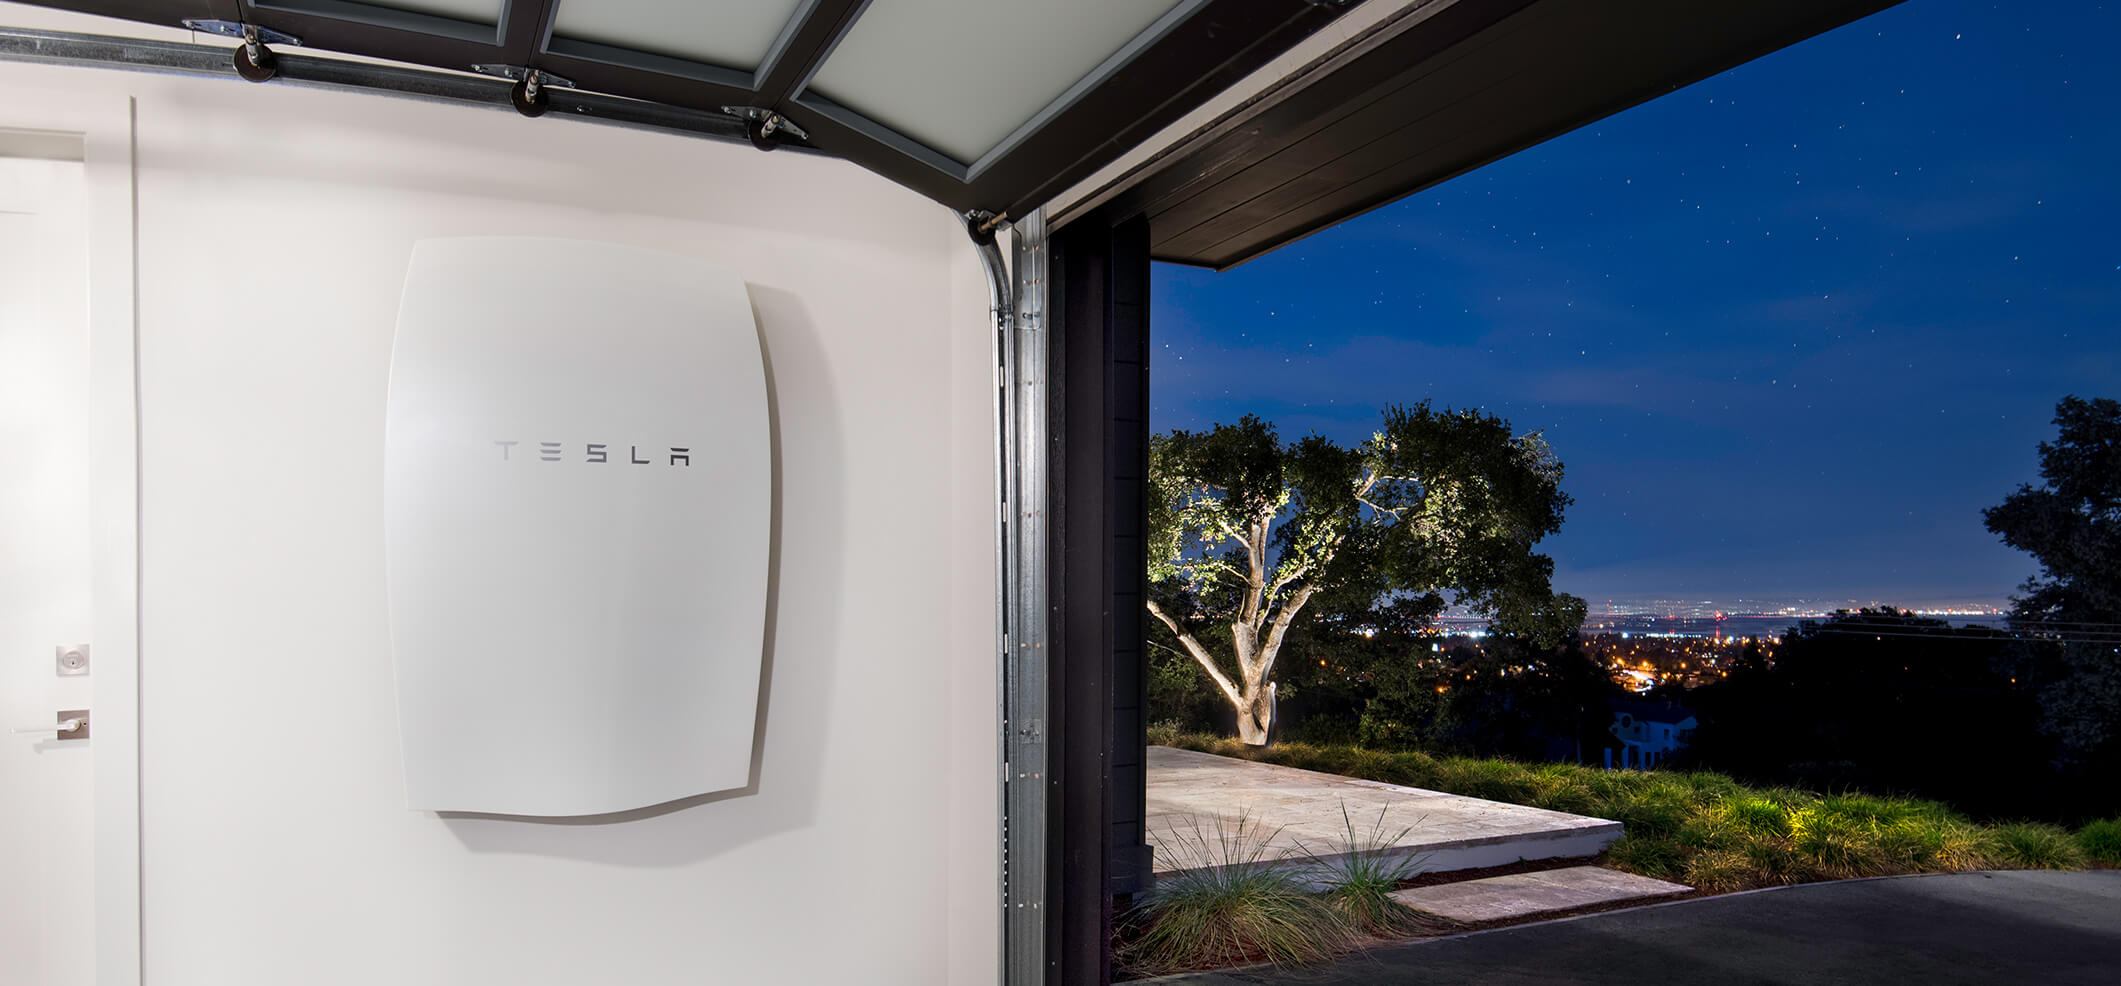 Can You Get A Tesla Powerwall With Sgip